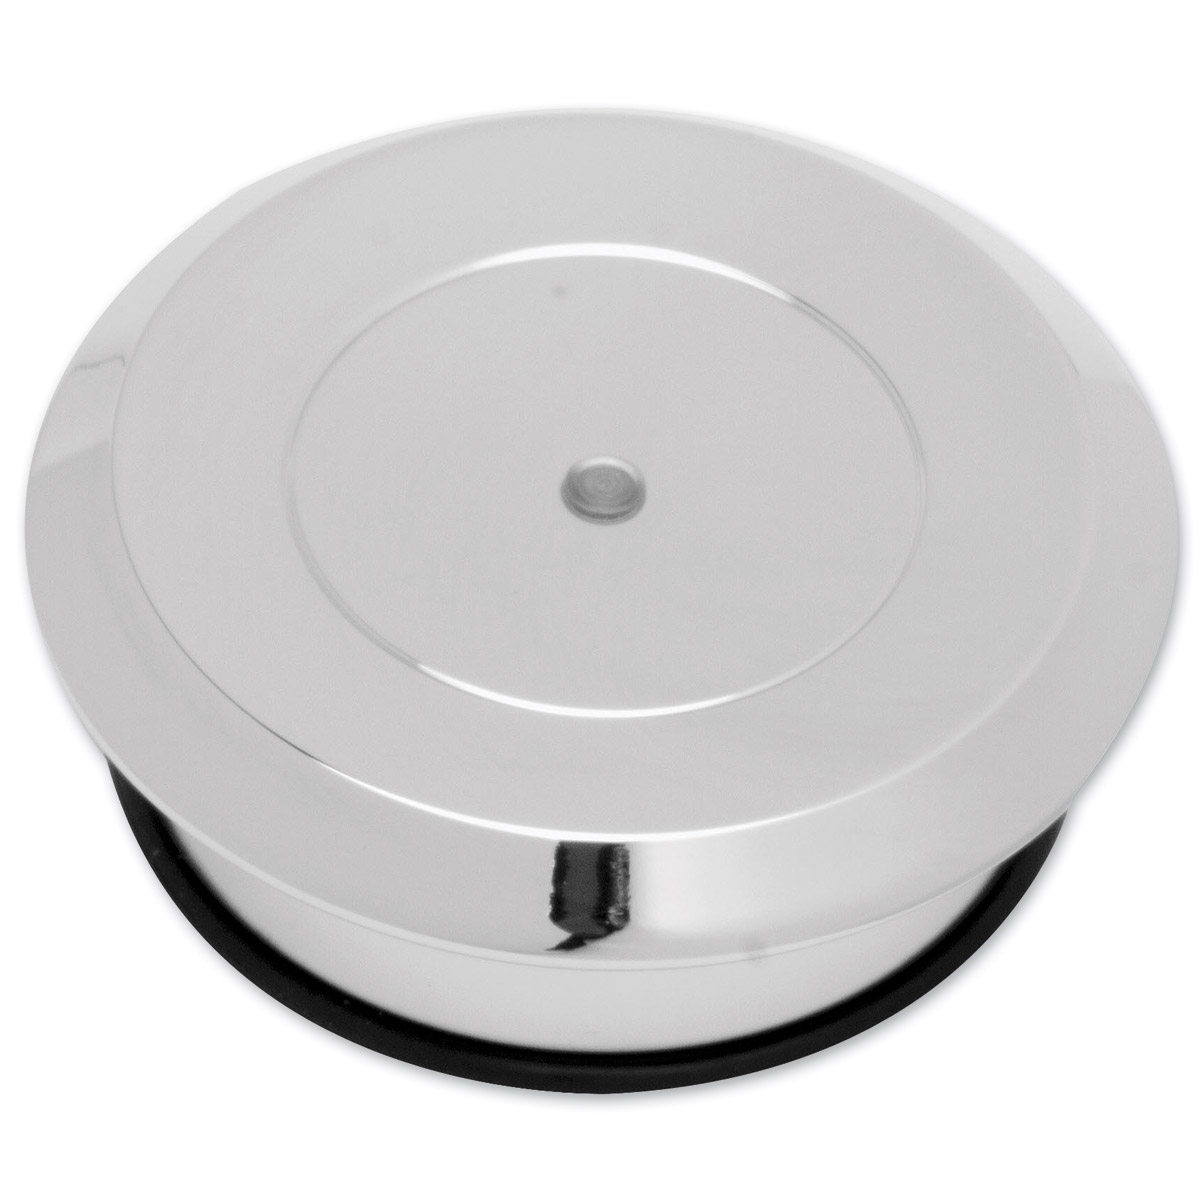 Arlen Ness Chrome Smooth Gas Cap with LED gauge